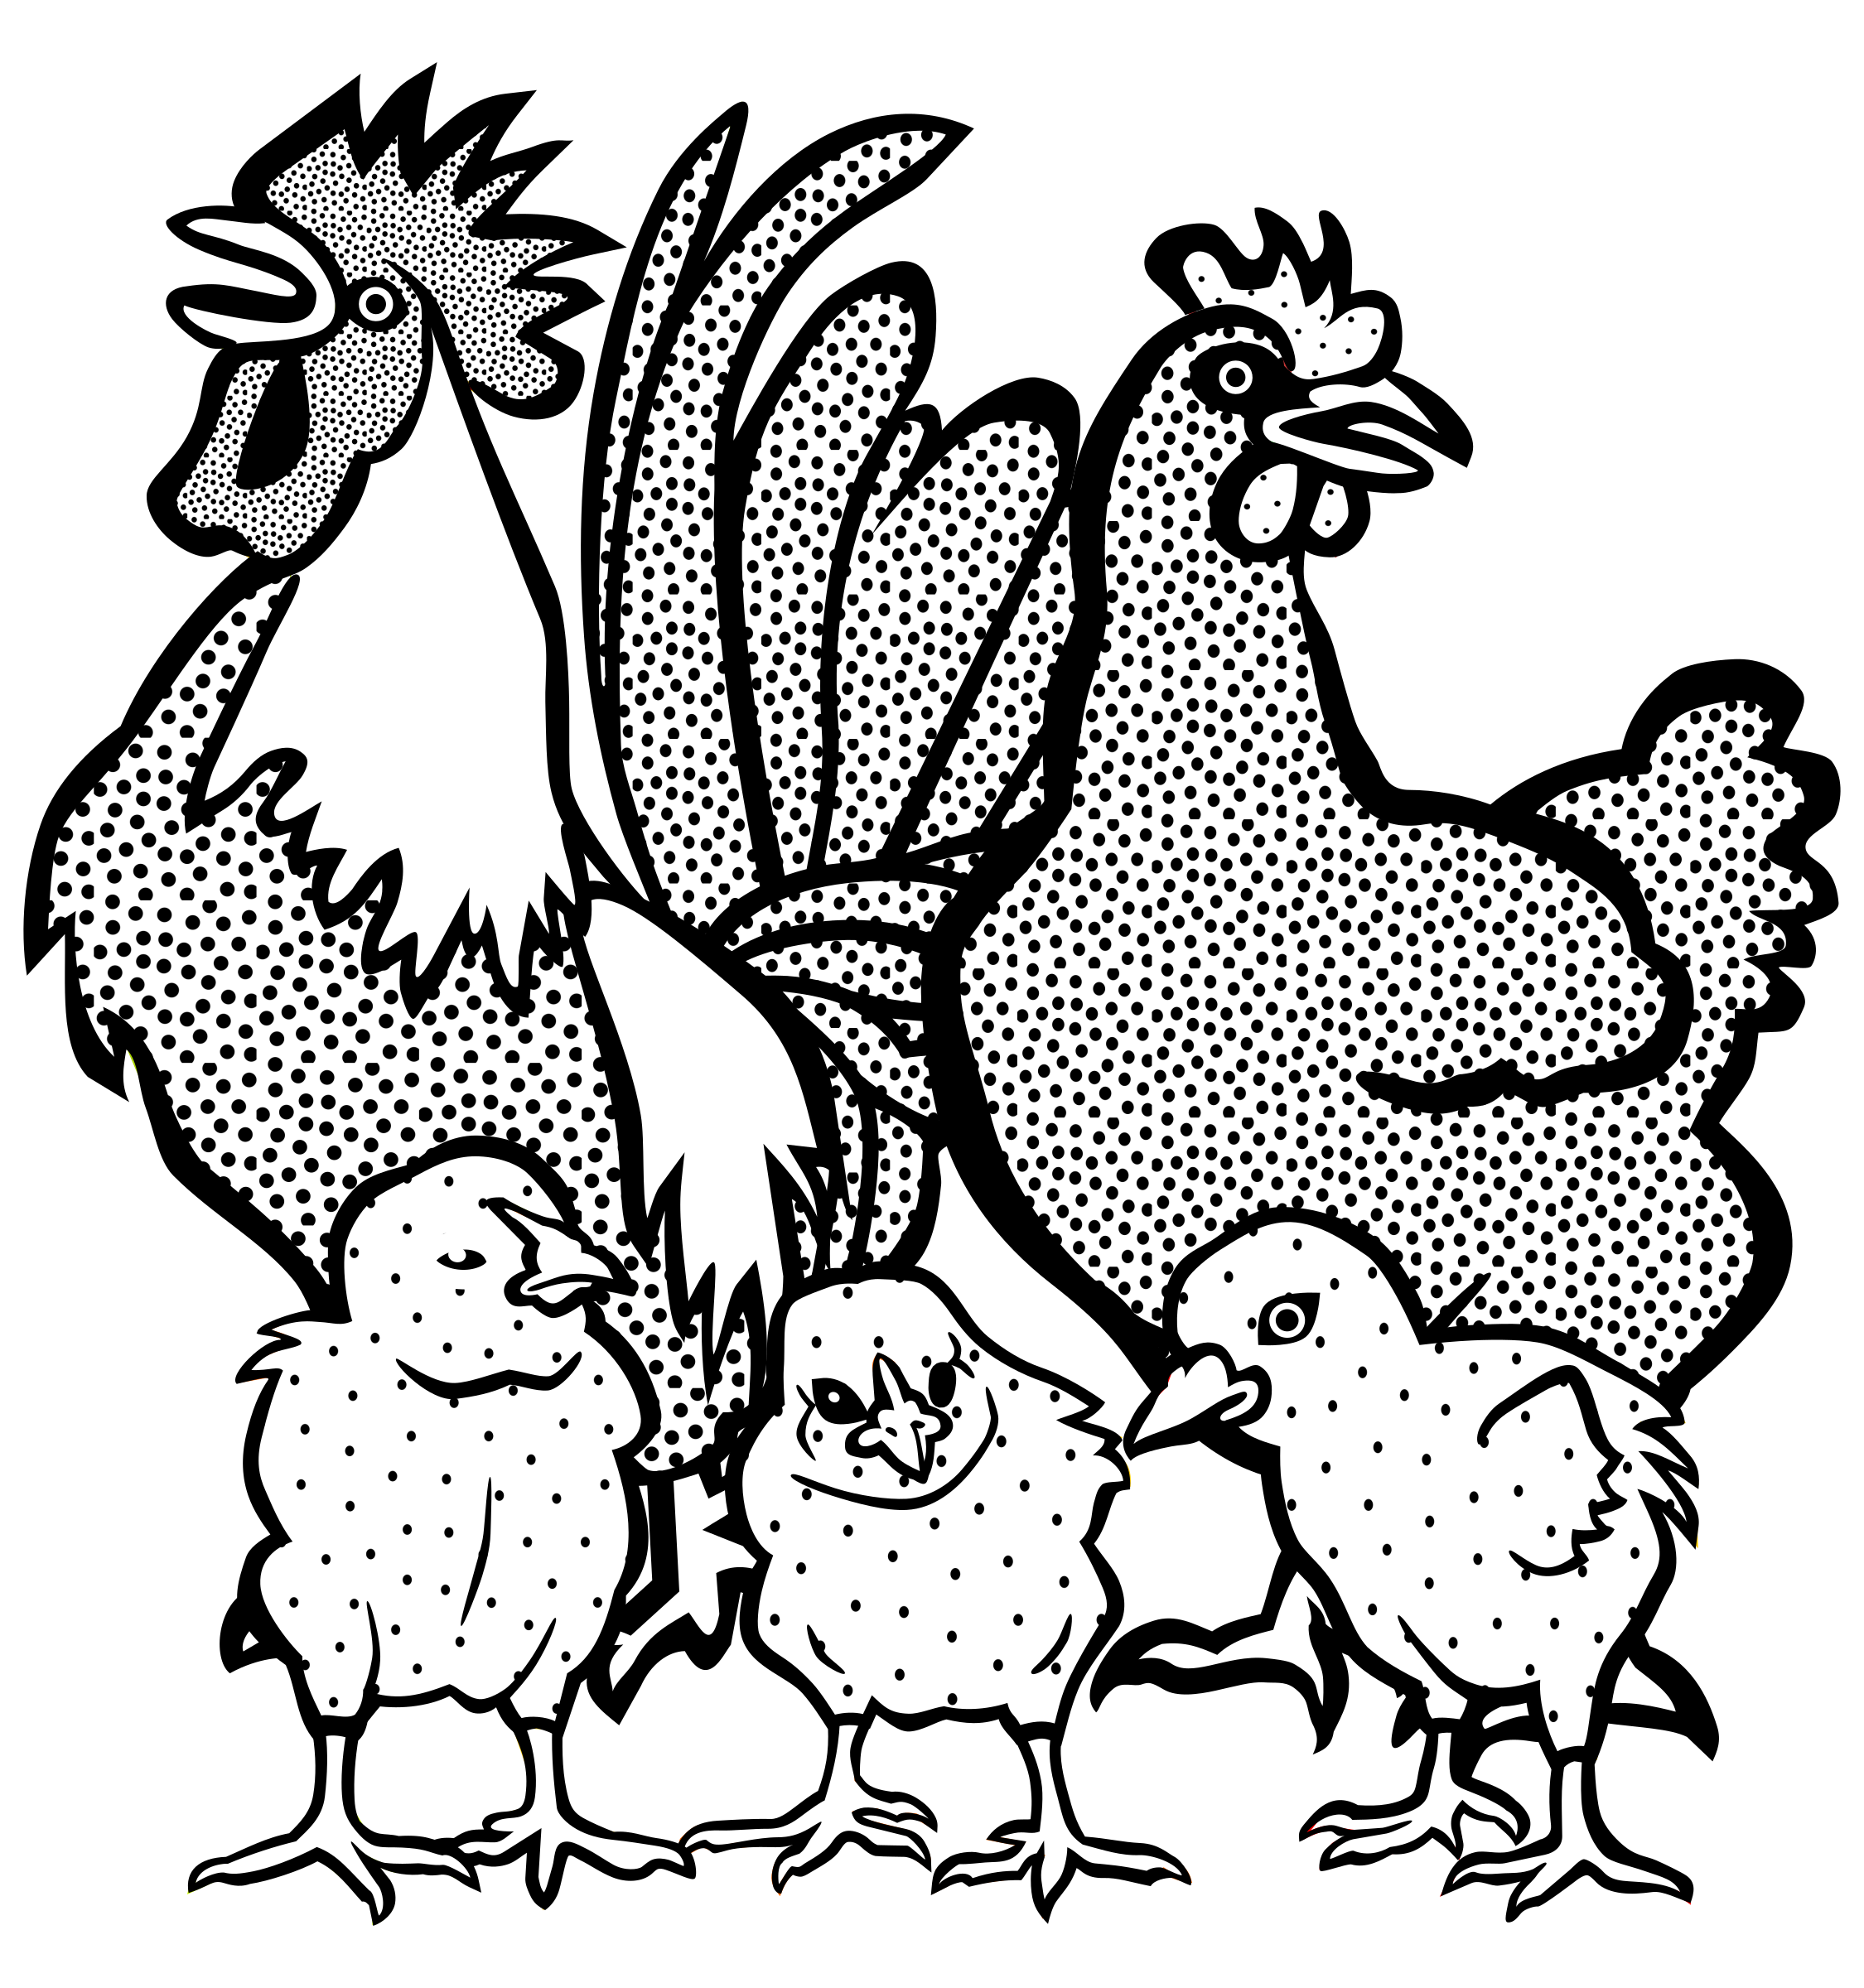 Hen clipart animal family. Chickens lineart big image